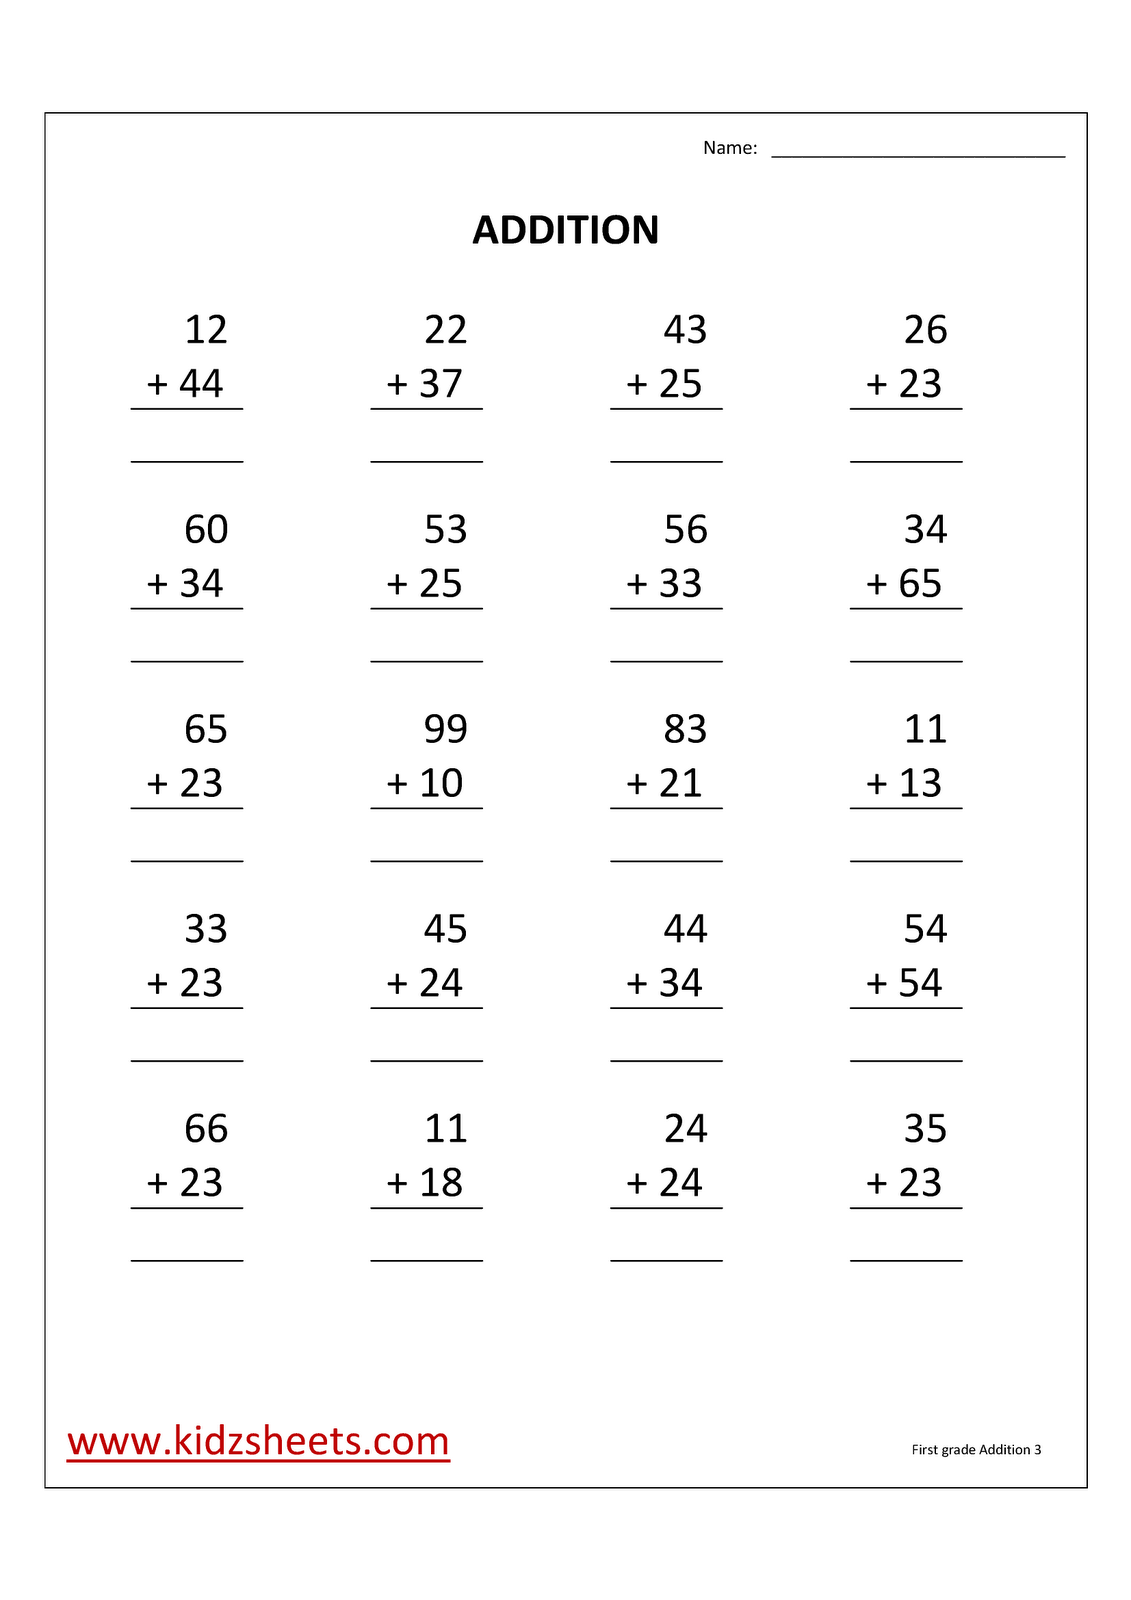 Kidz Worksheets First Grade Addition Worksheet3